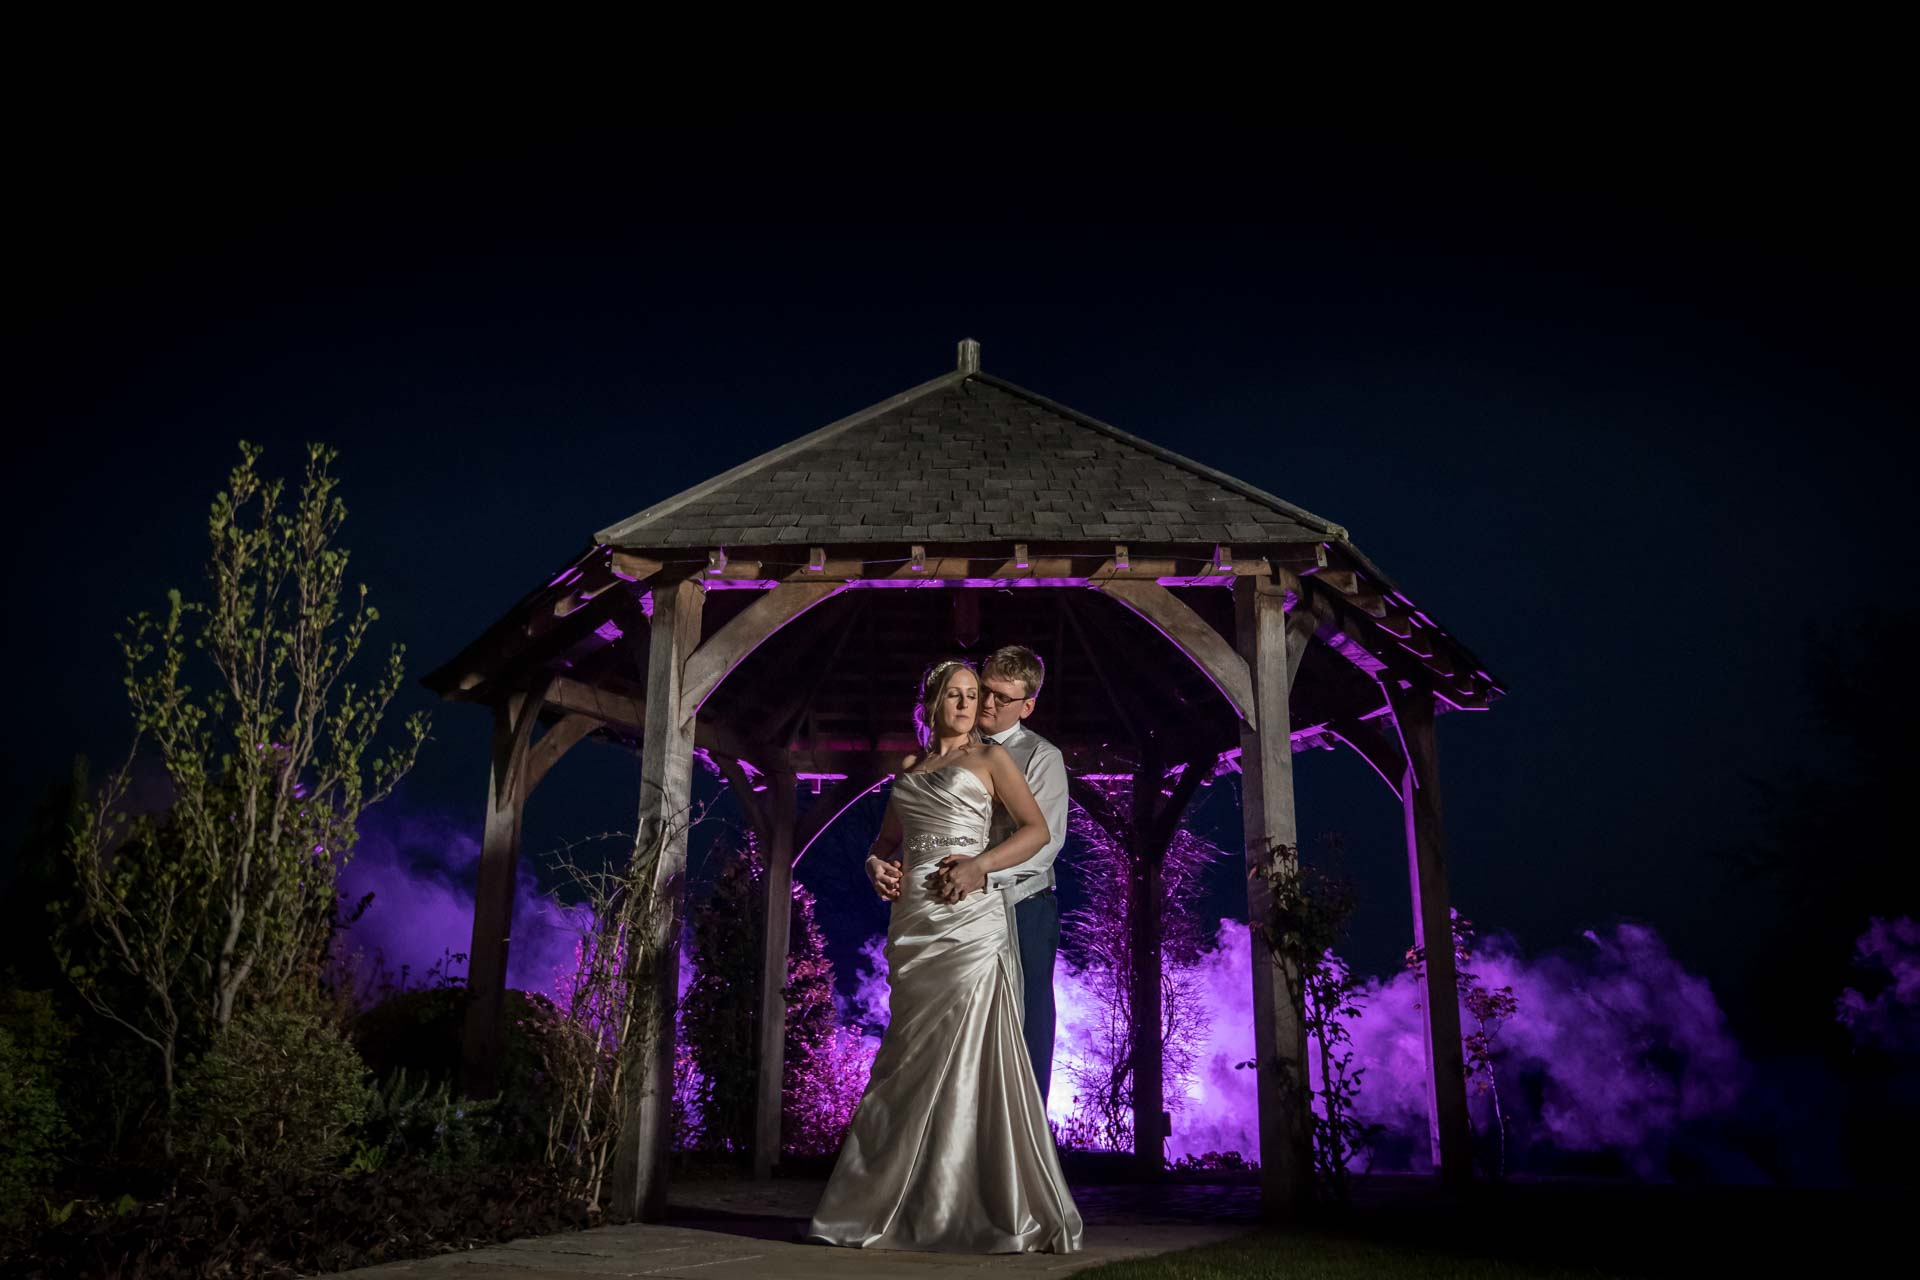 Evening photo of bride and groom with purple lighting